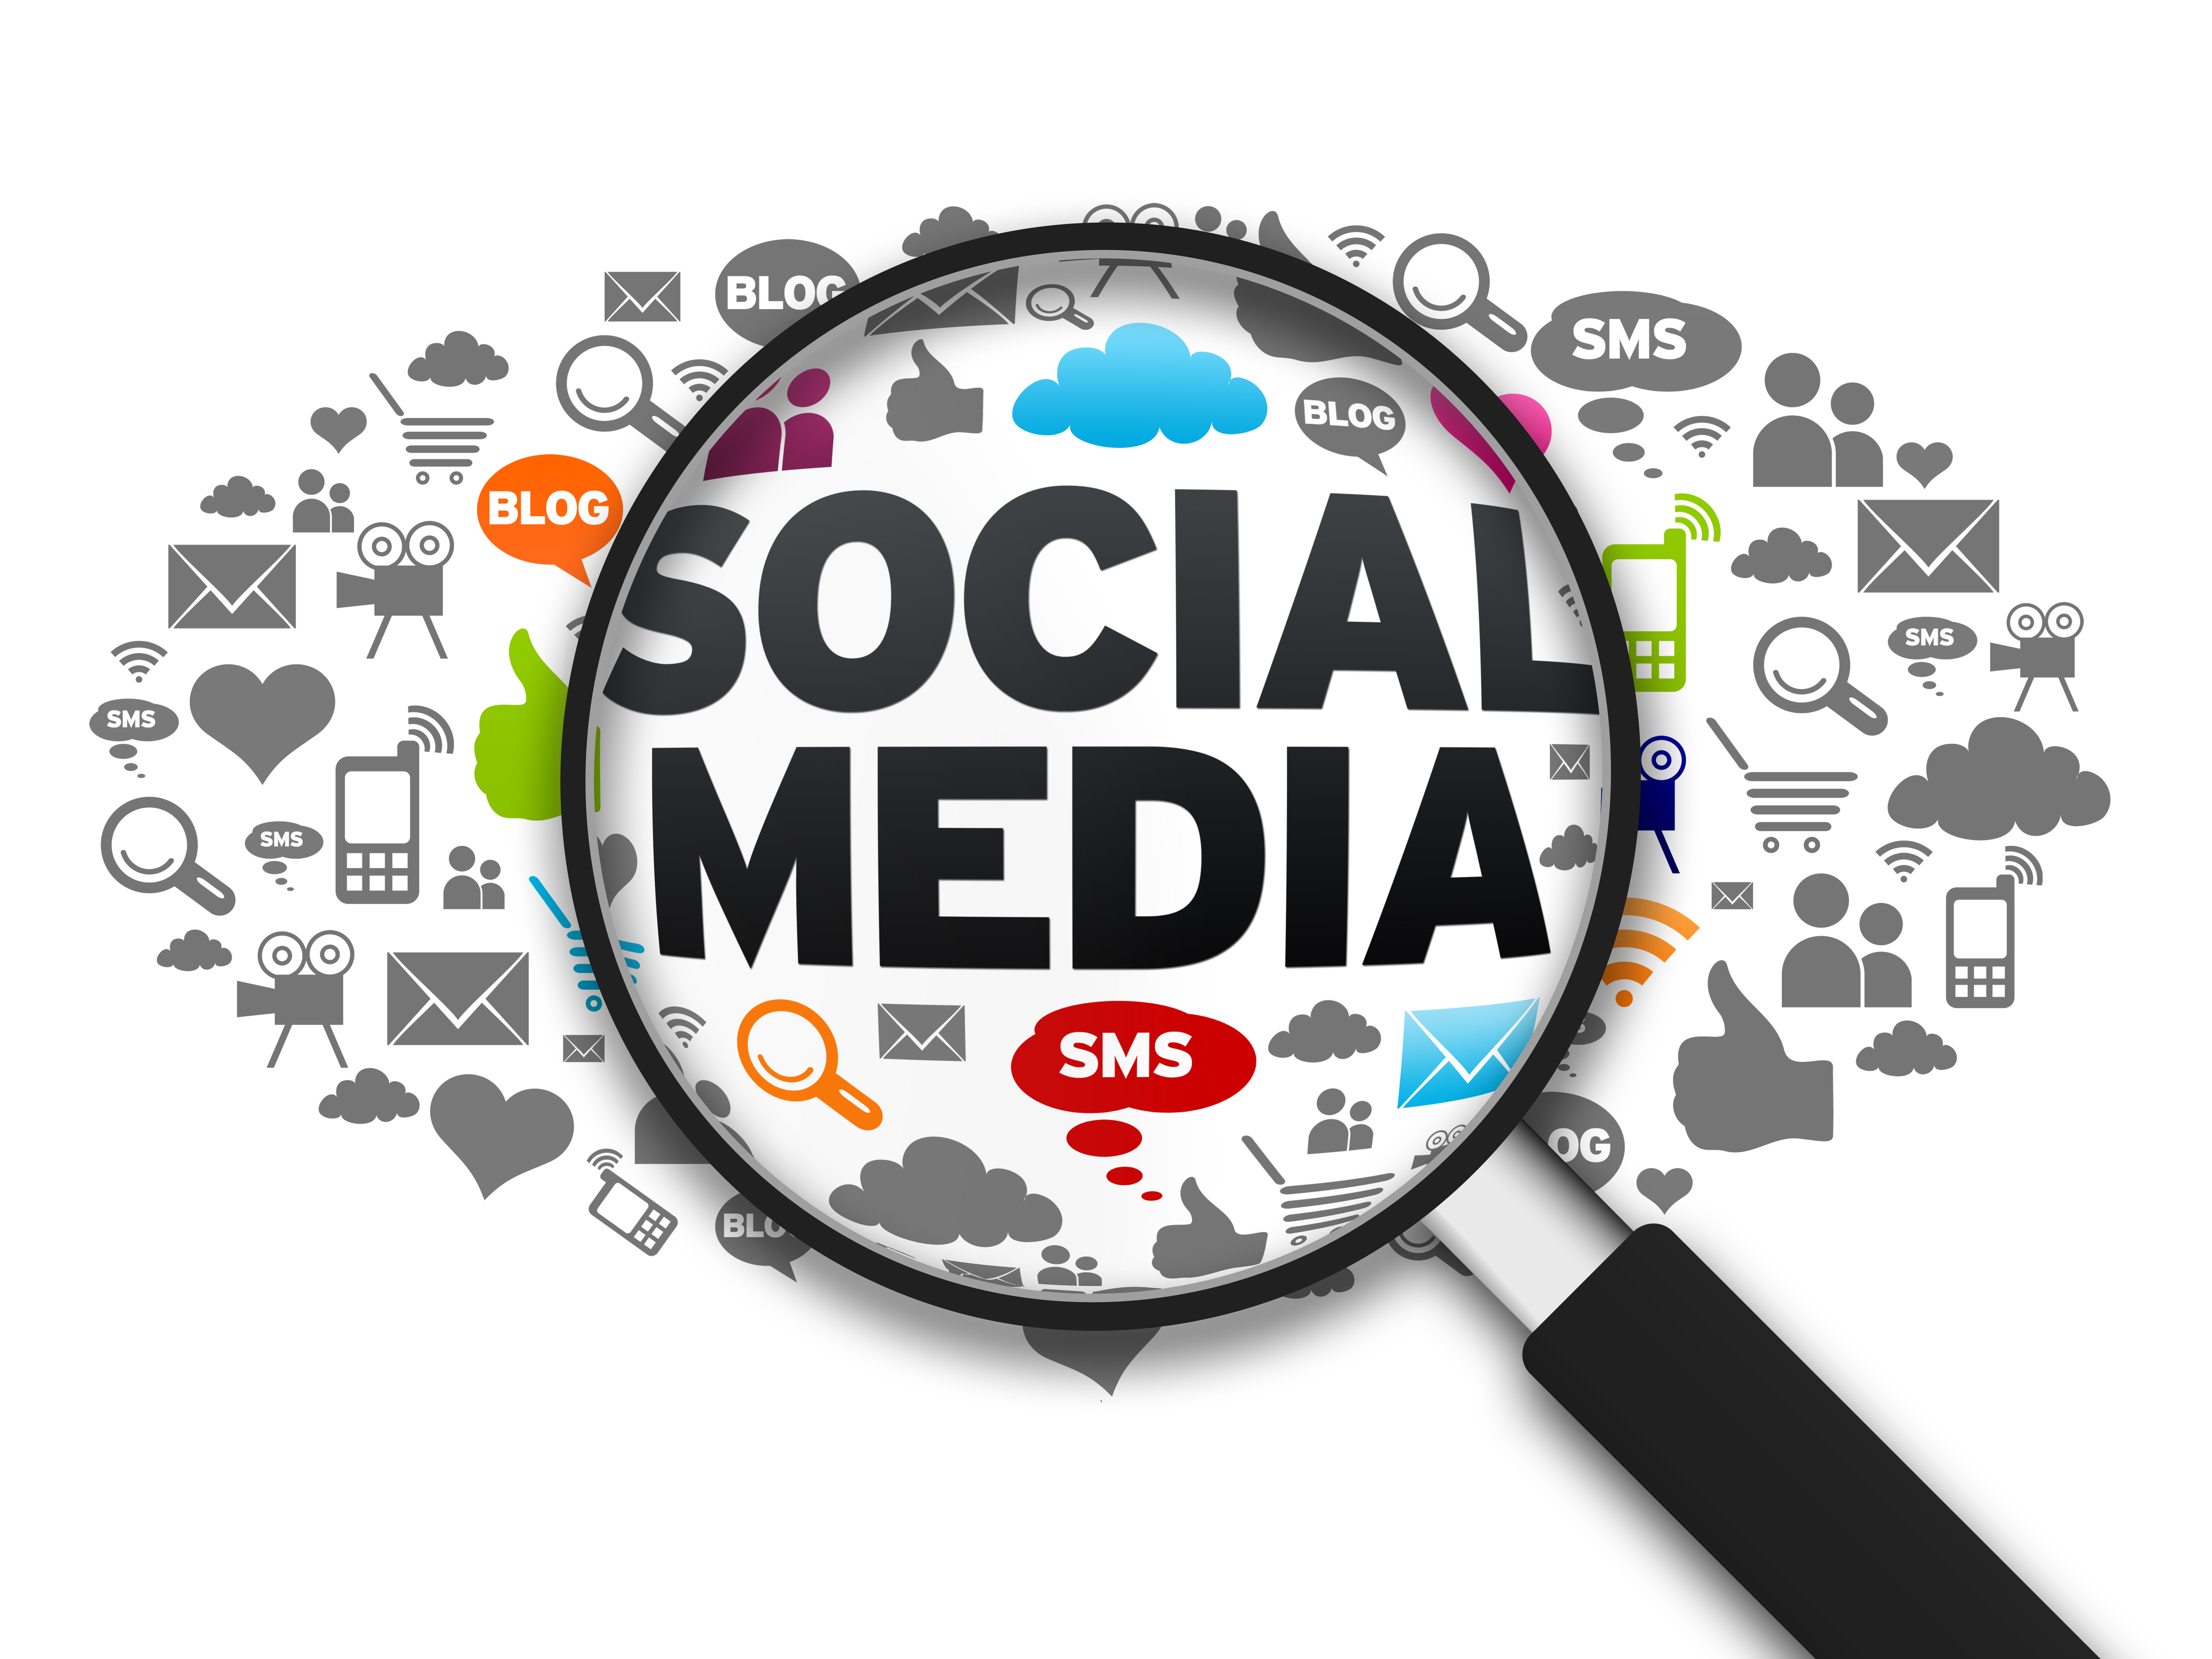 UltraIT offers great Social Media help